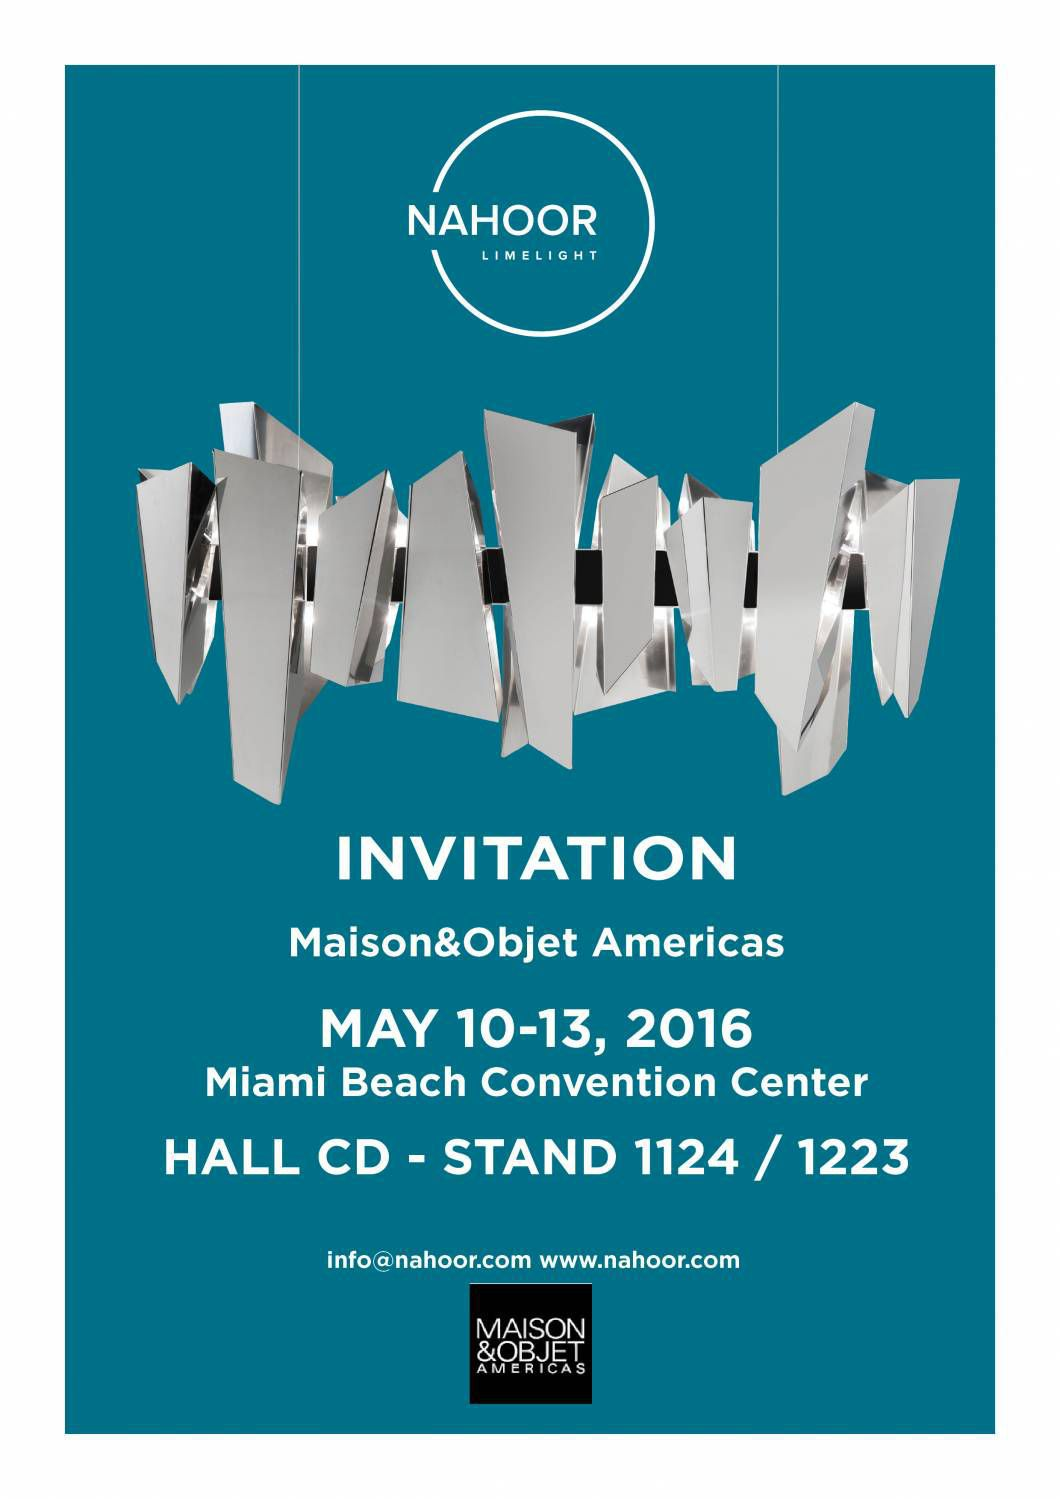 Nahoor at Maison&Objet Americas in Miami